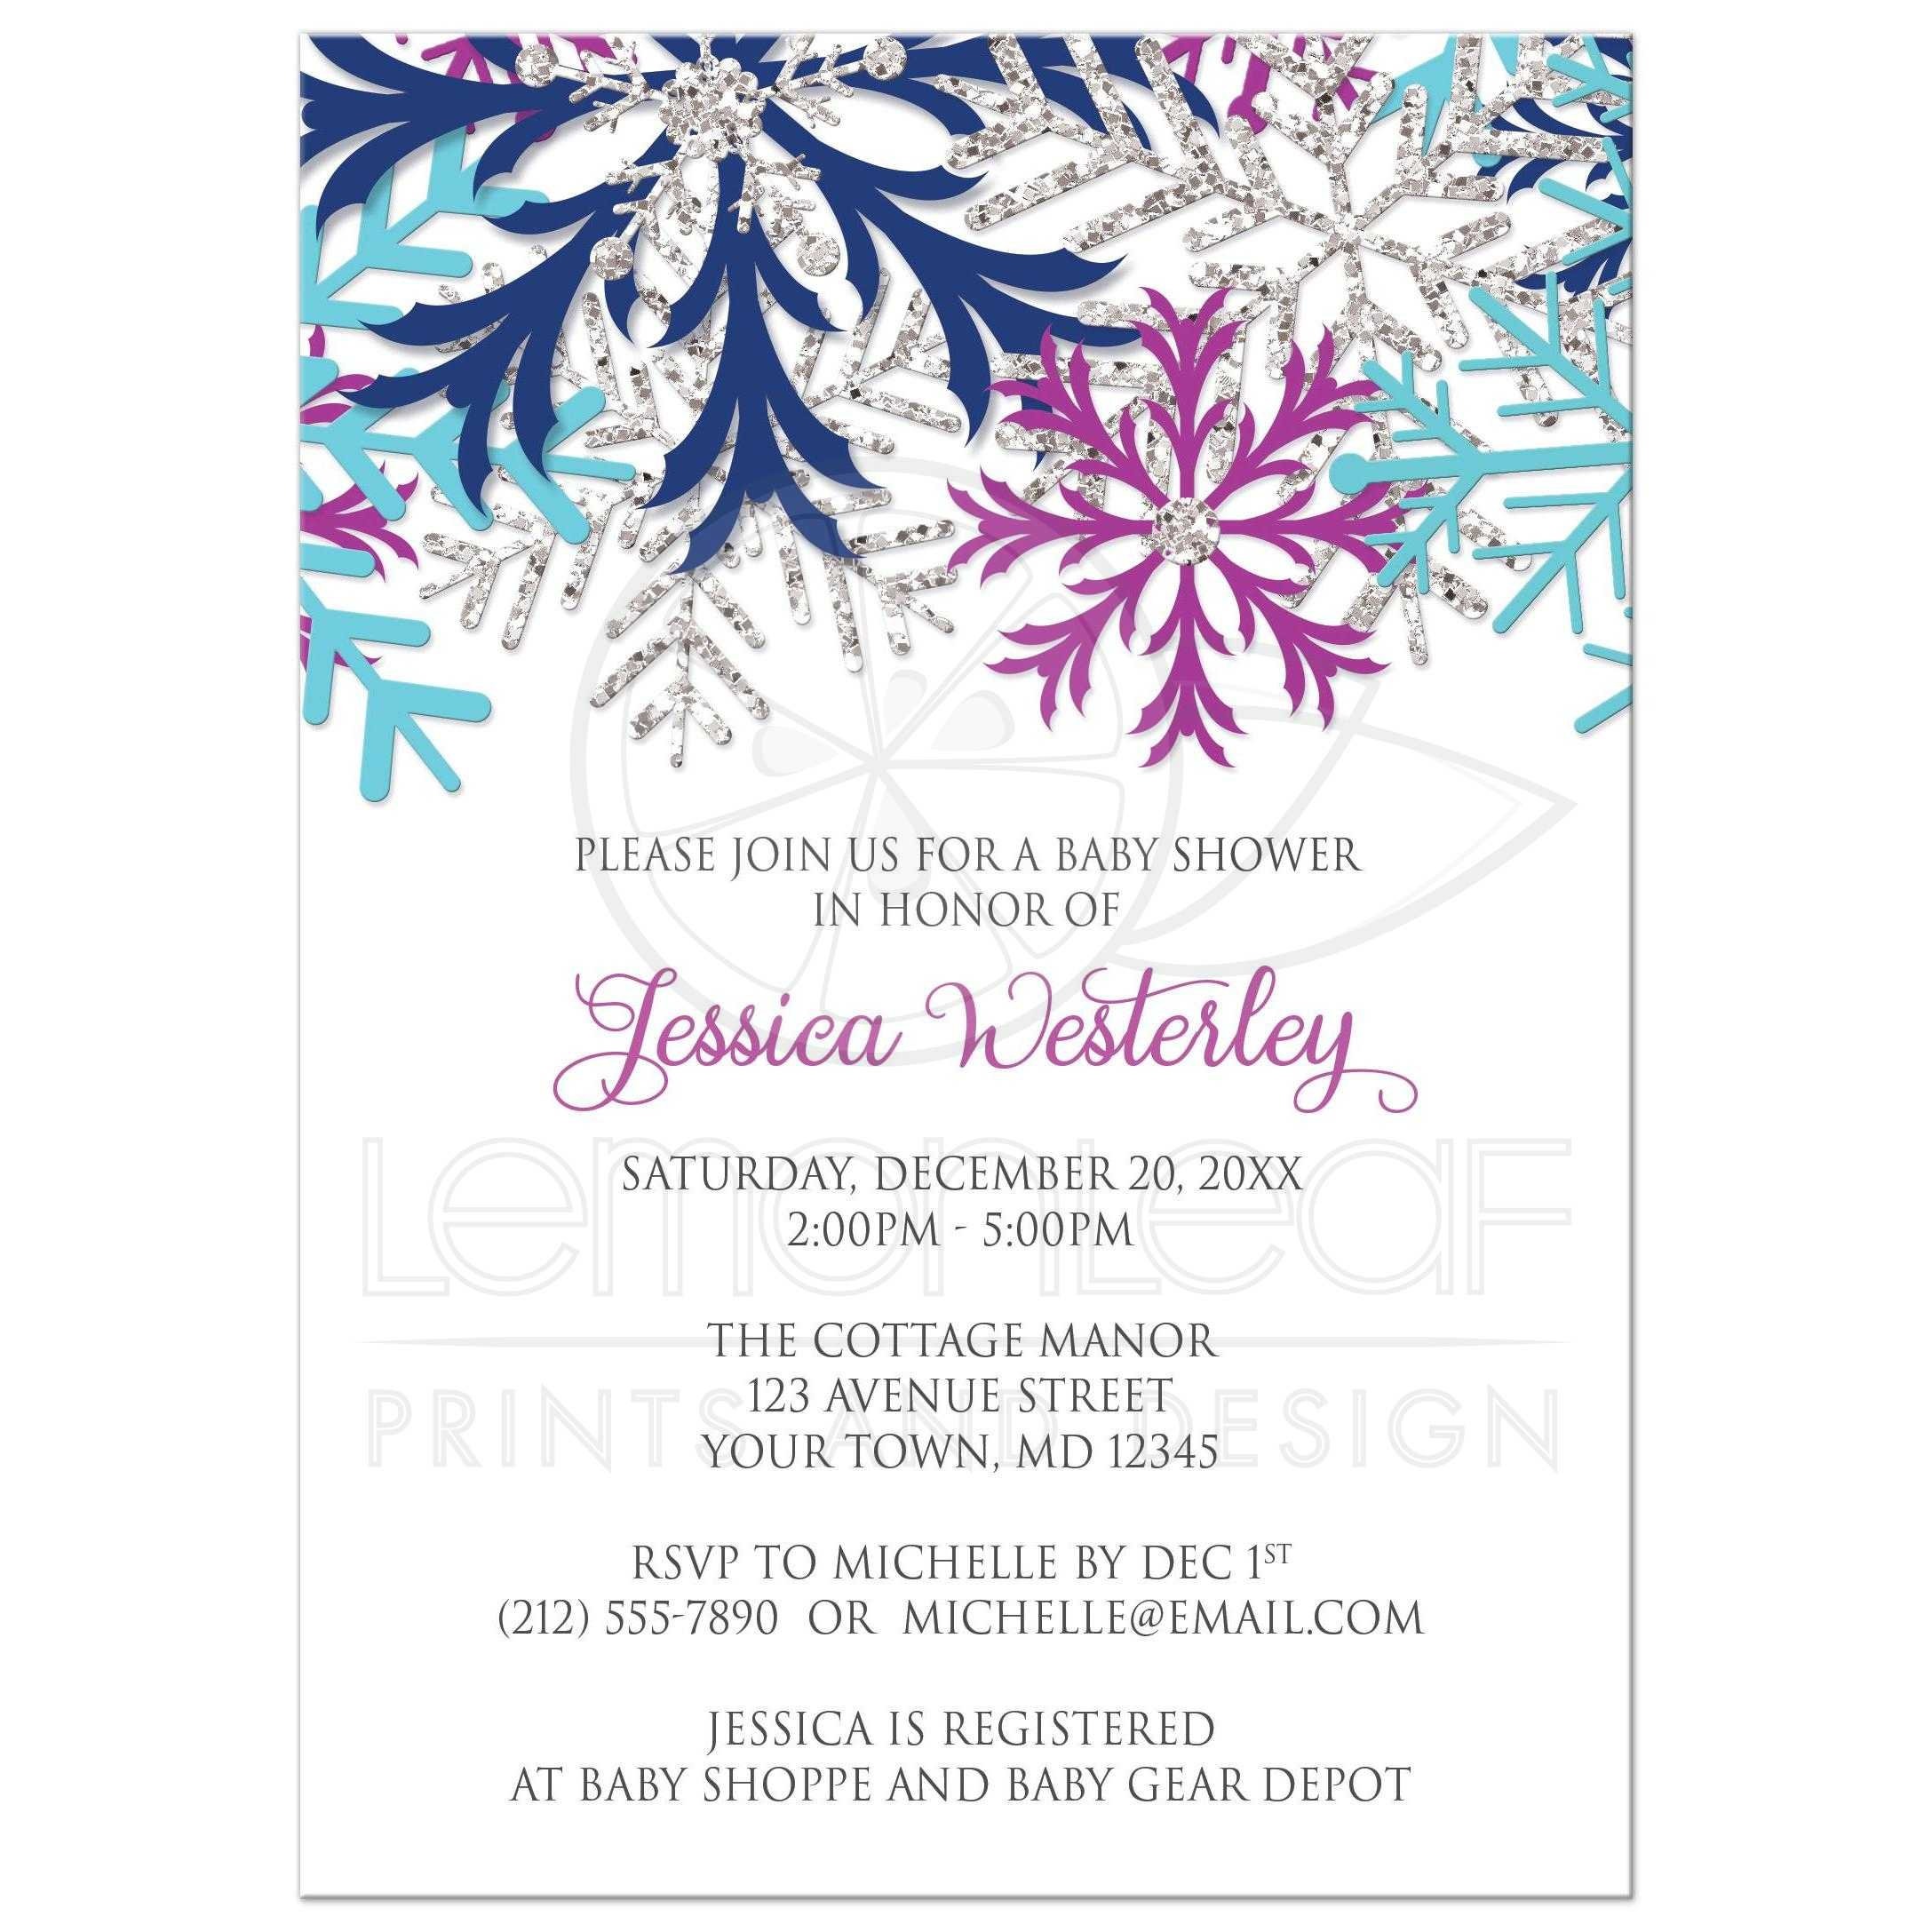 Baby Shower Invitations   Turquoise Navy Orchid Silver Snowflake